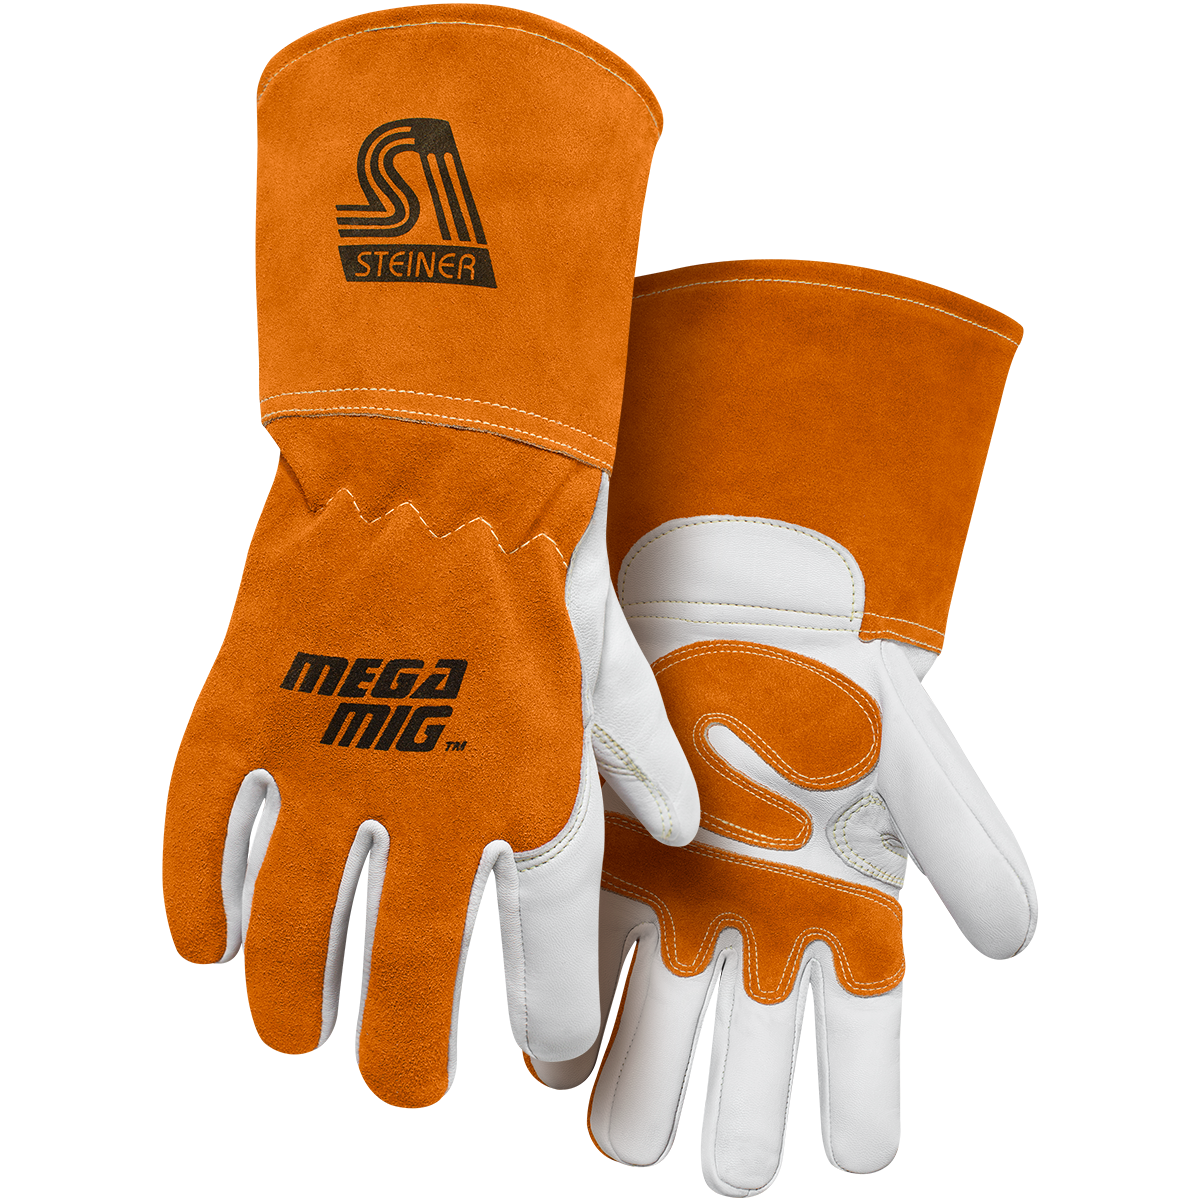 Steiner industries mega glove. Welding clipart mig welding